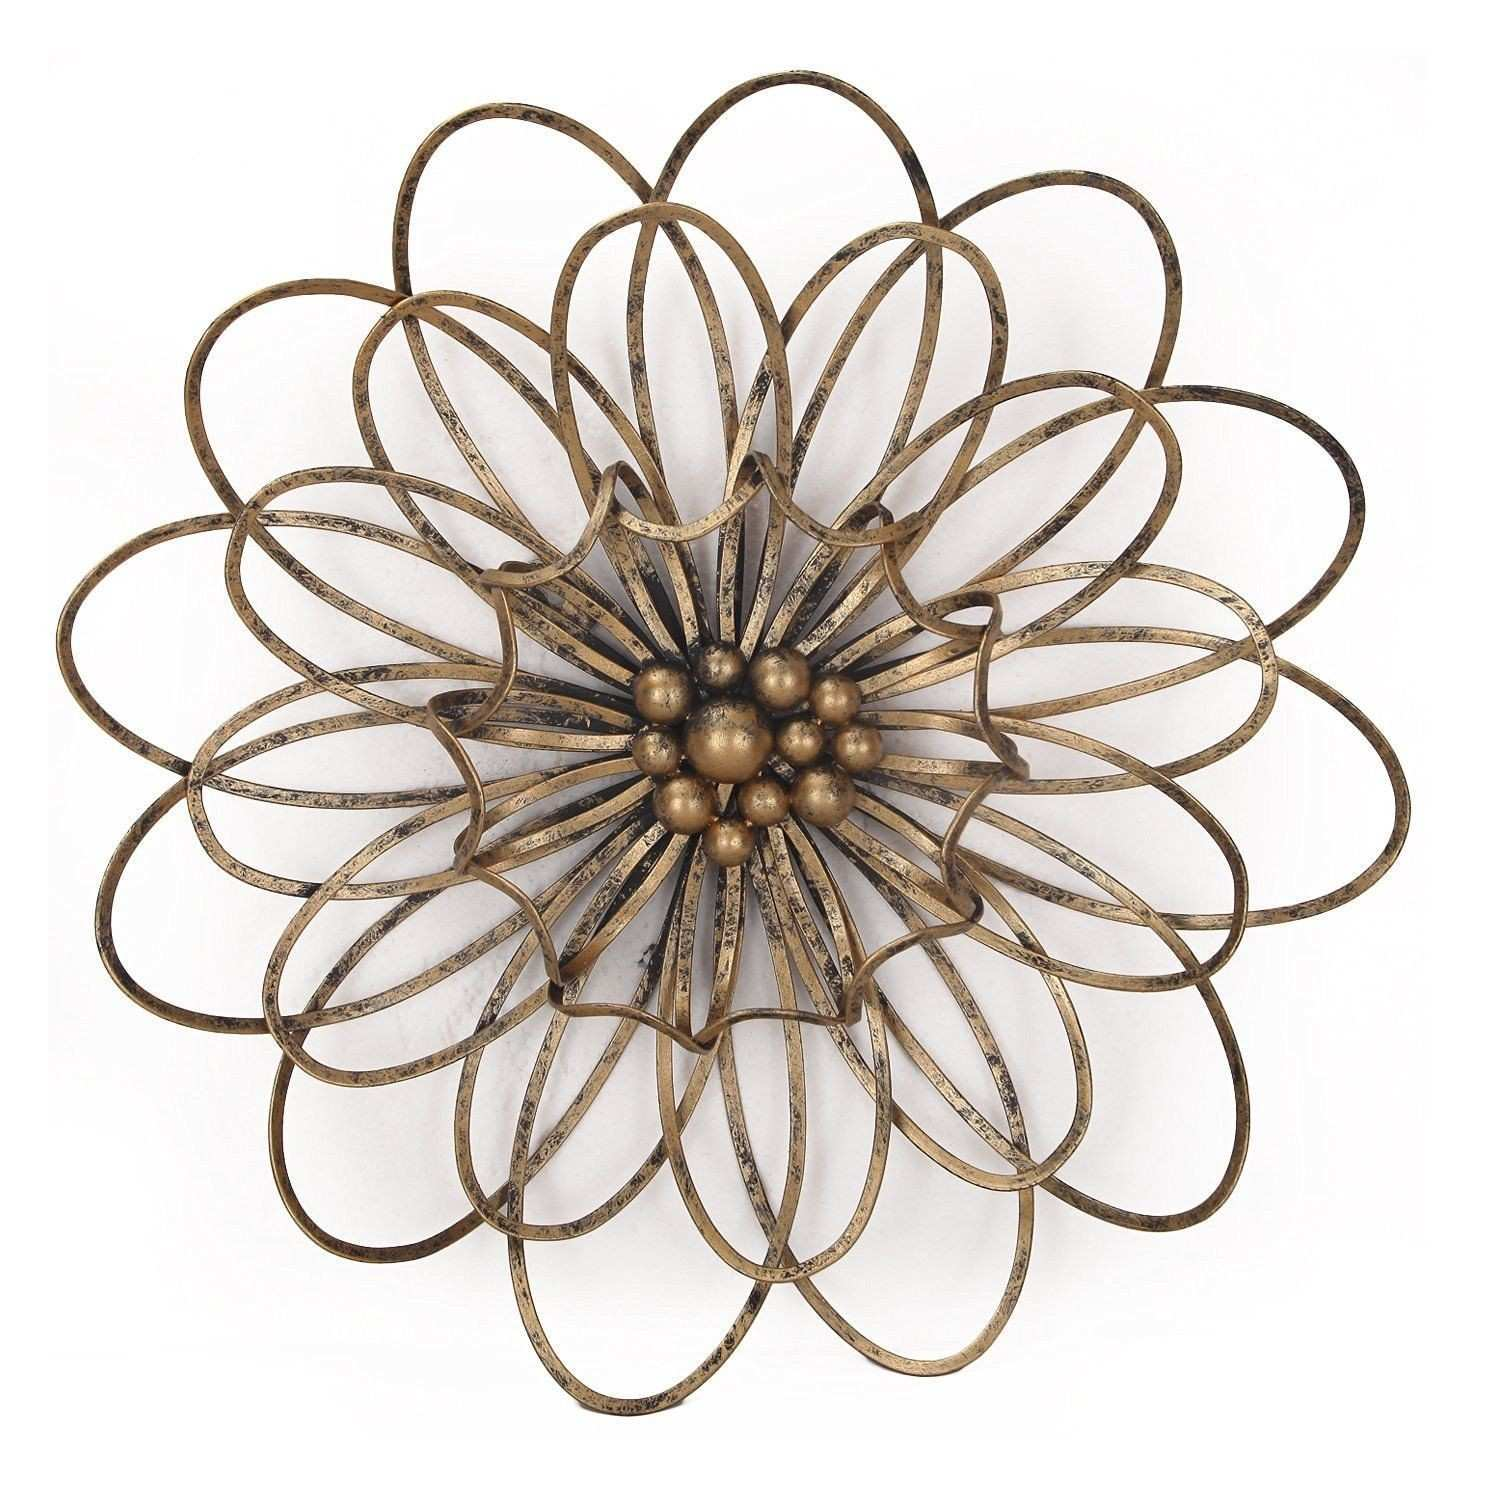 Wall Decor Hosley s Metal Wall Décor Can Be Used As A Decorative